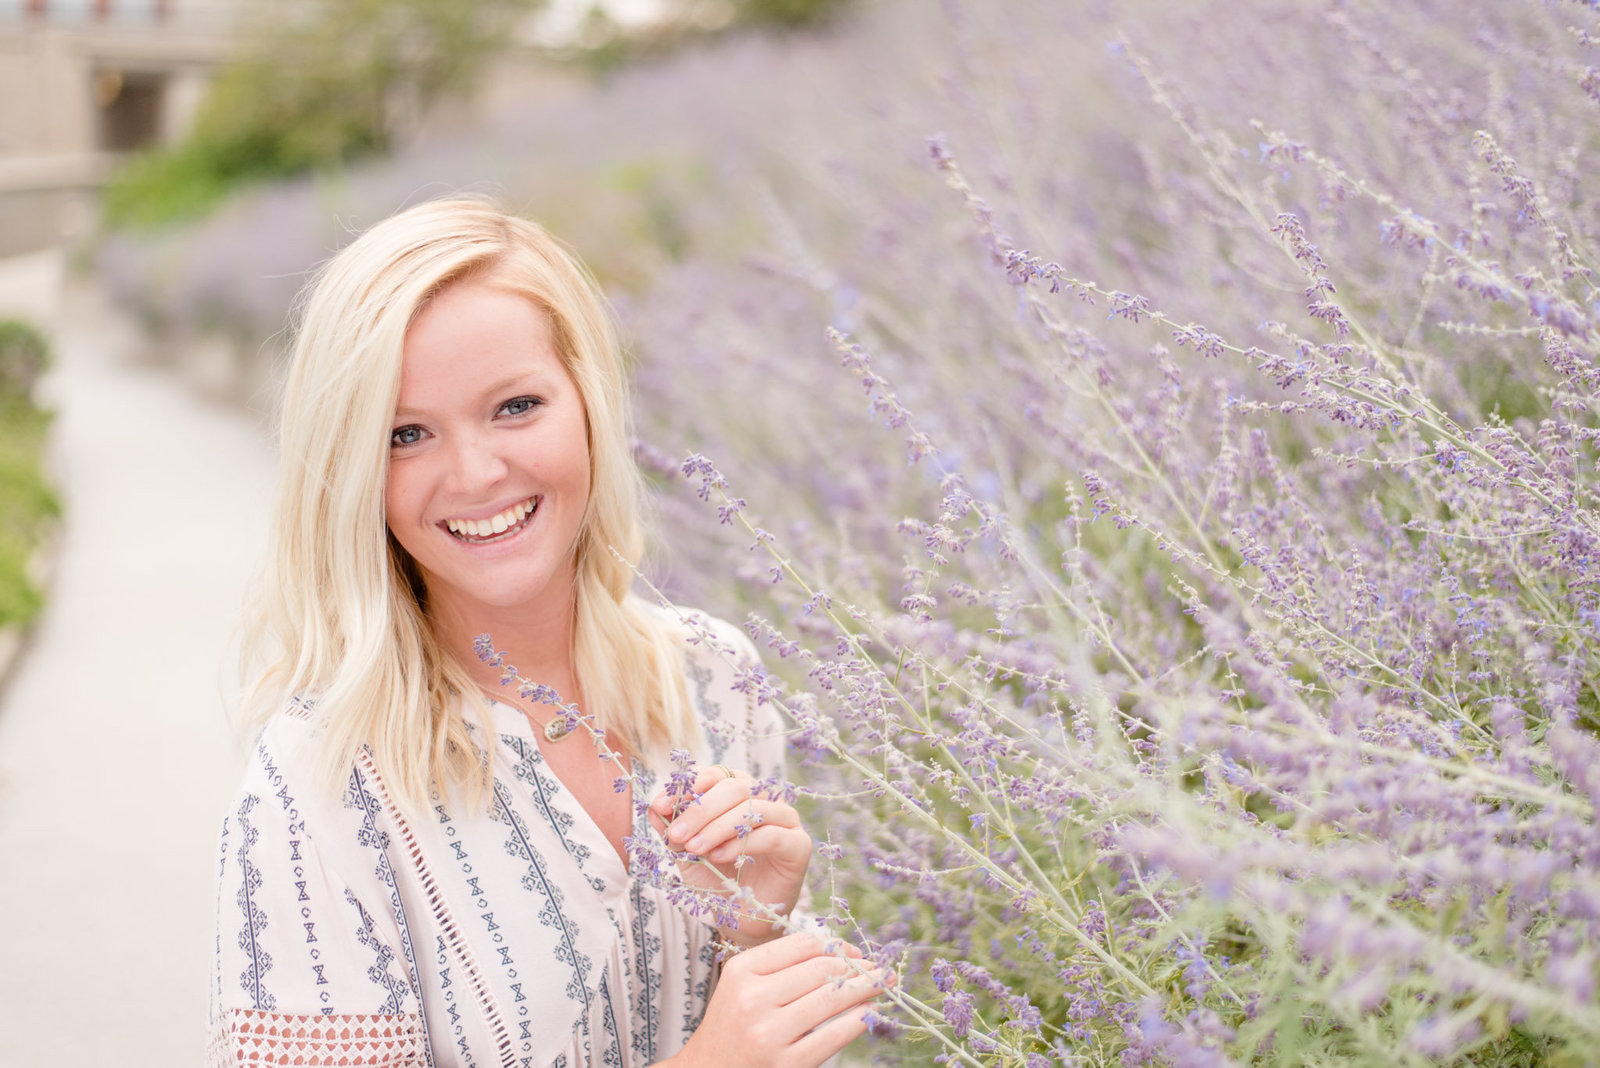 Girl holds lavender and smiles